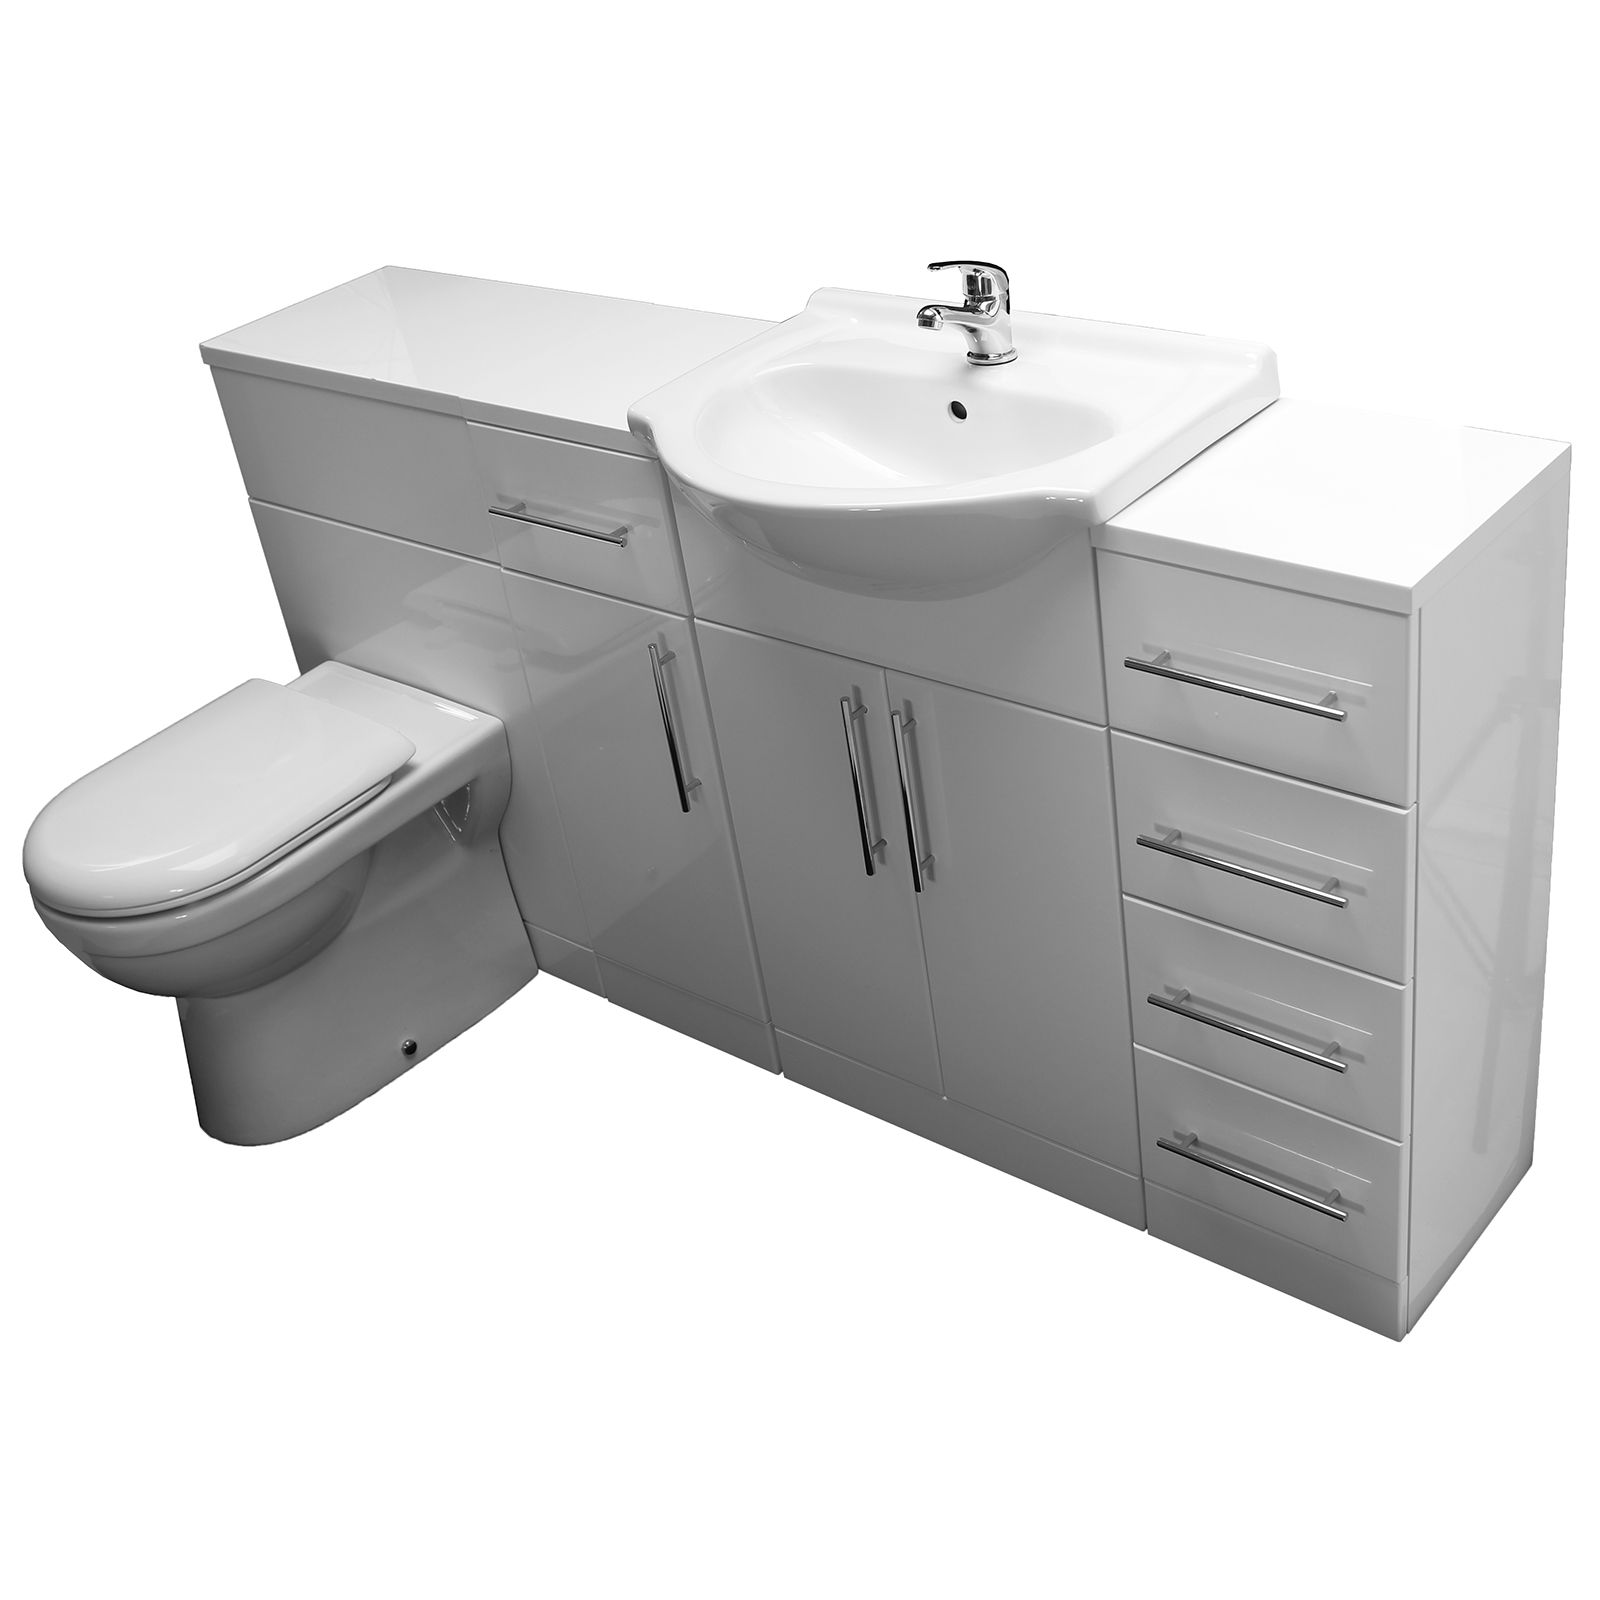 Allbits eden wc combination 550 vanity unit door draw units at allbits plumbing supplies for Bathroom combination vanity units